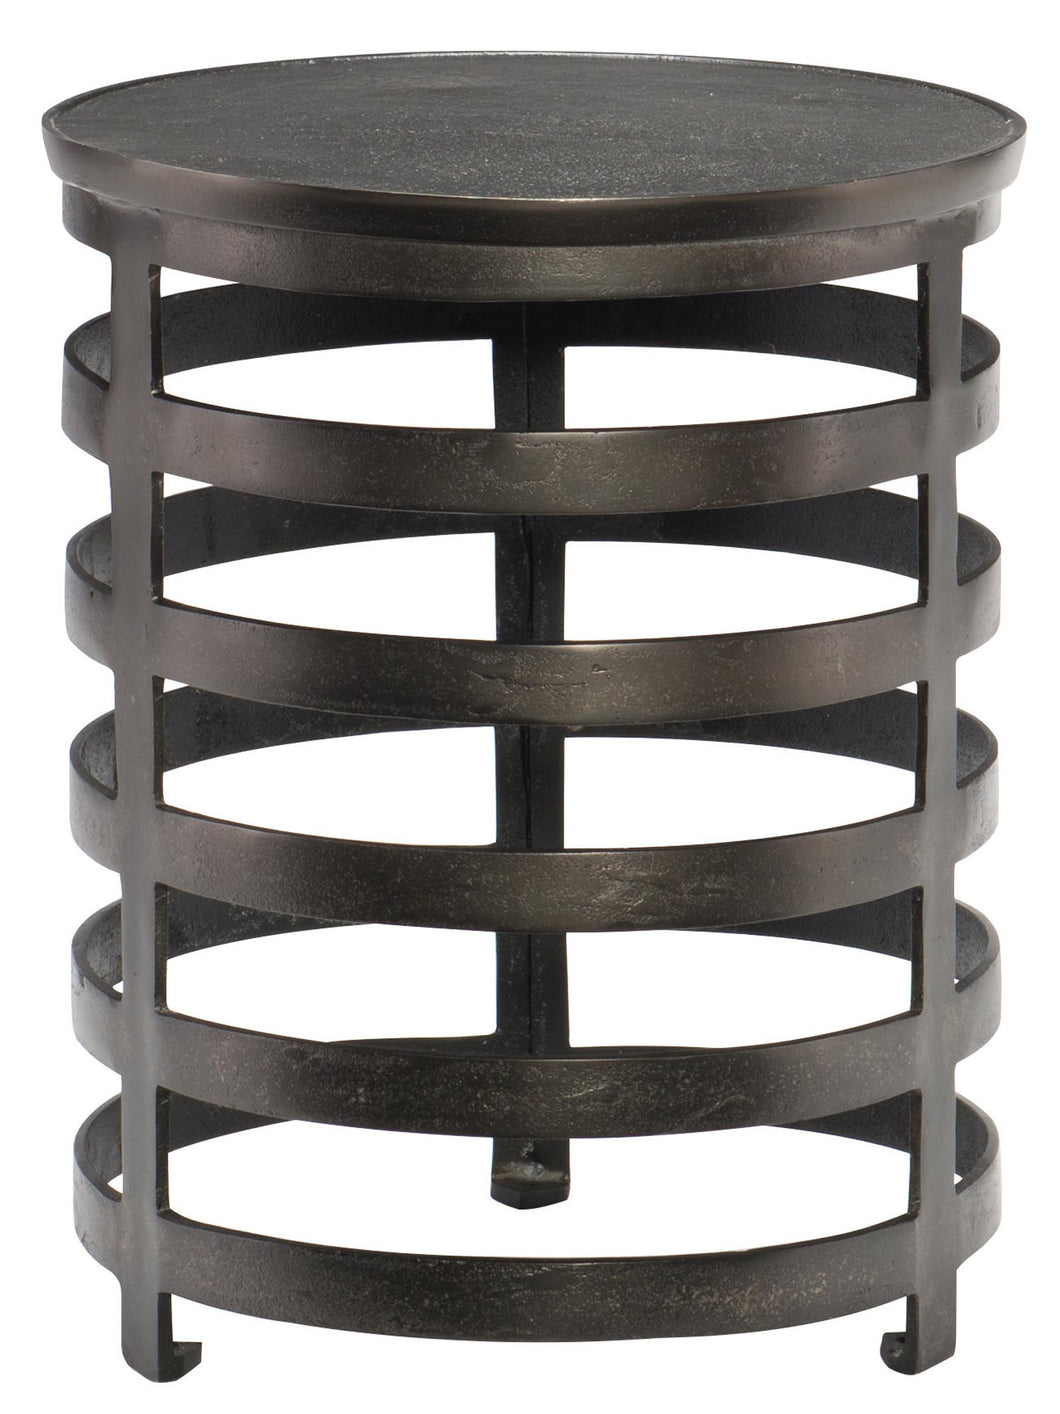 Round Black Nickel Cast Aluminum Chairside Table, Home Furnishings, Laura of Pembroke